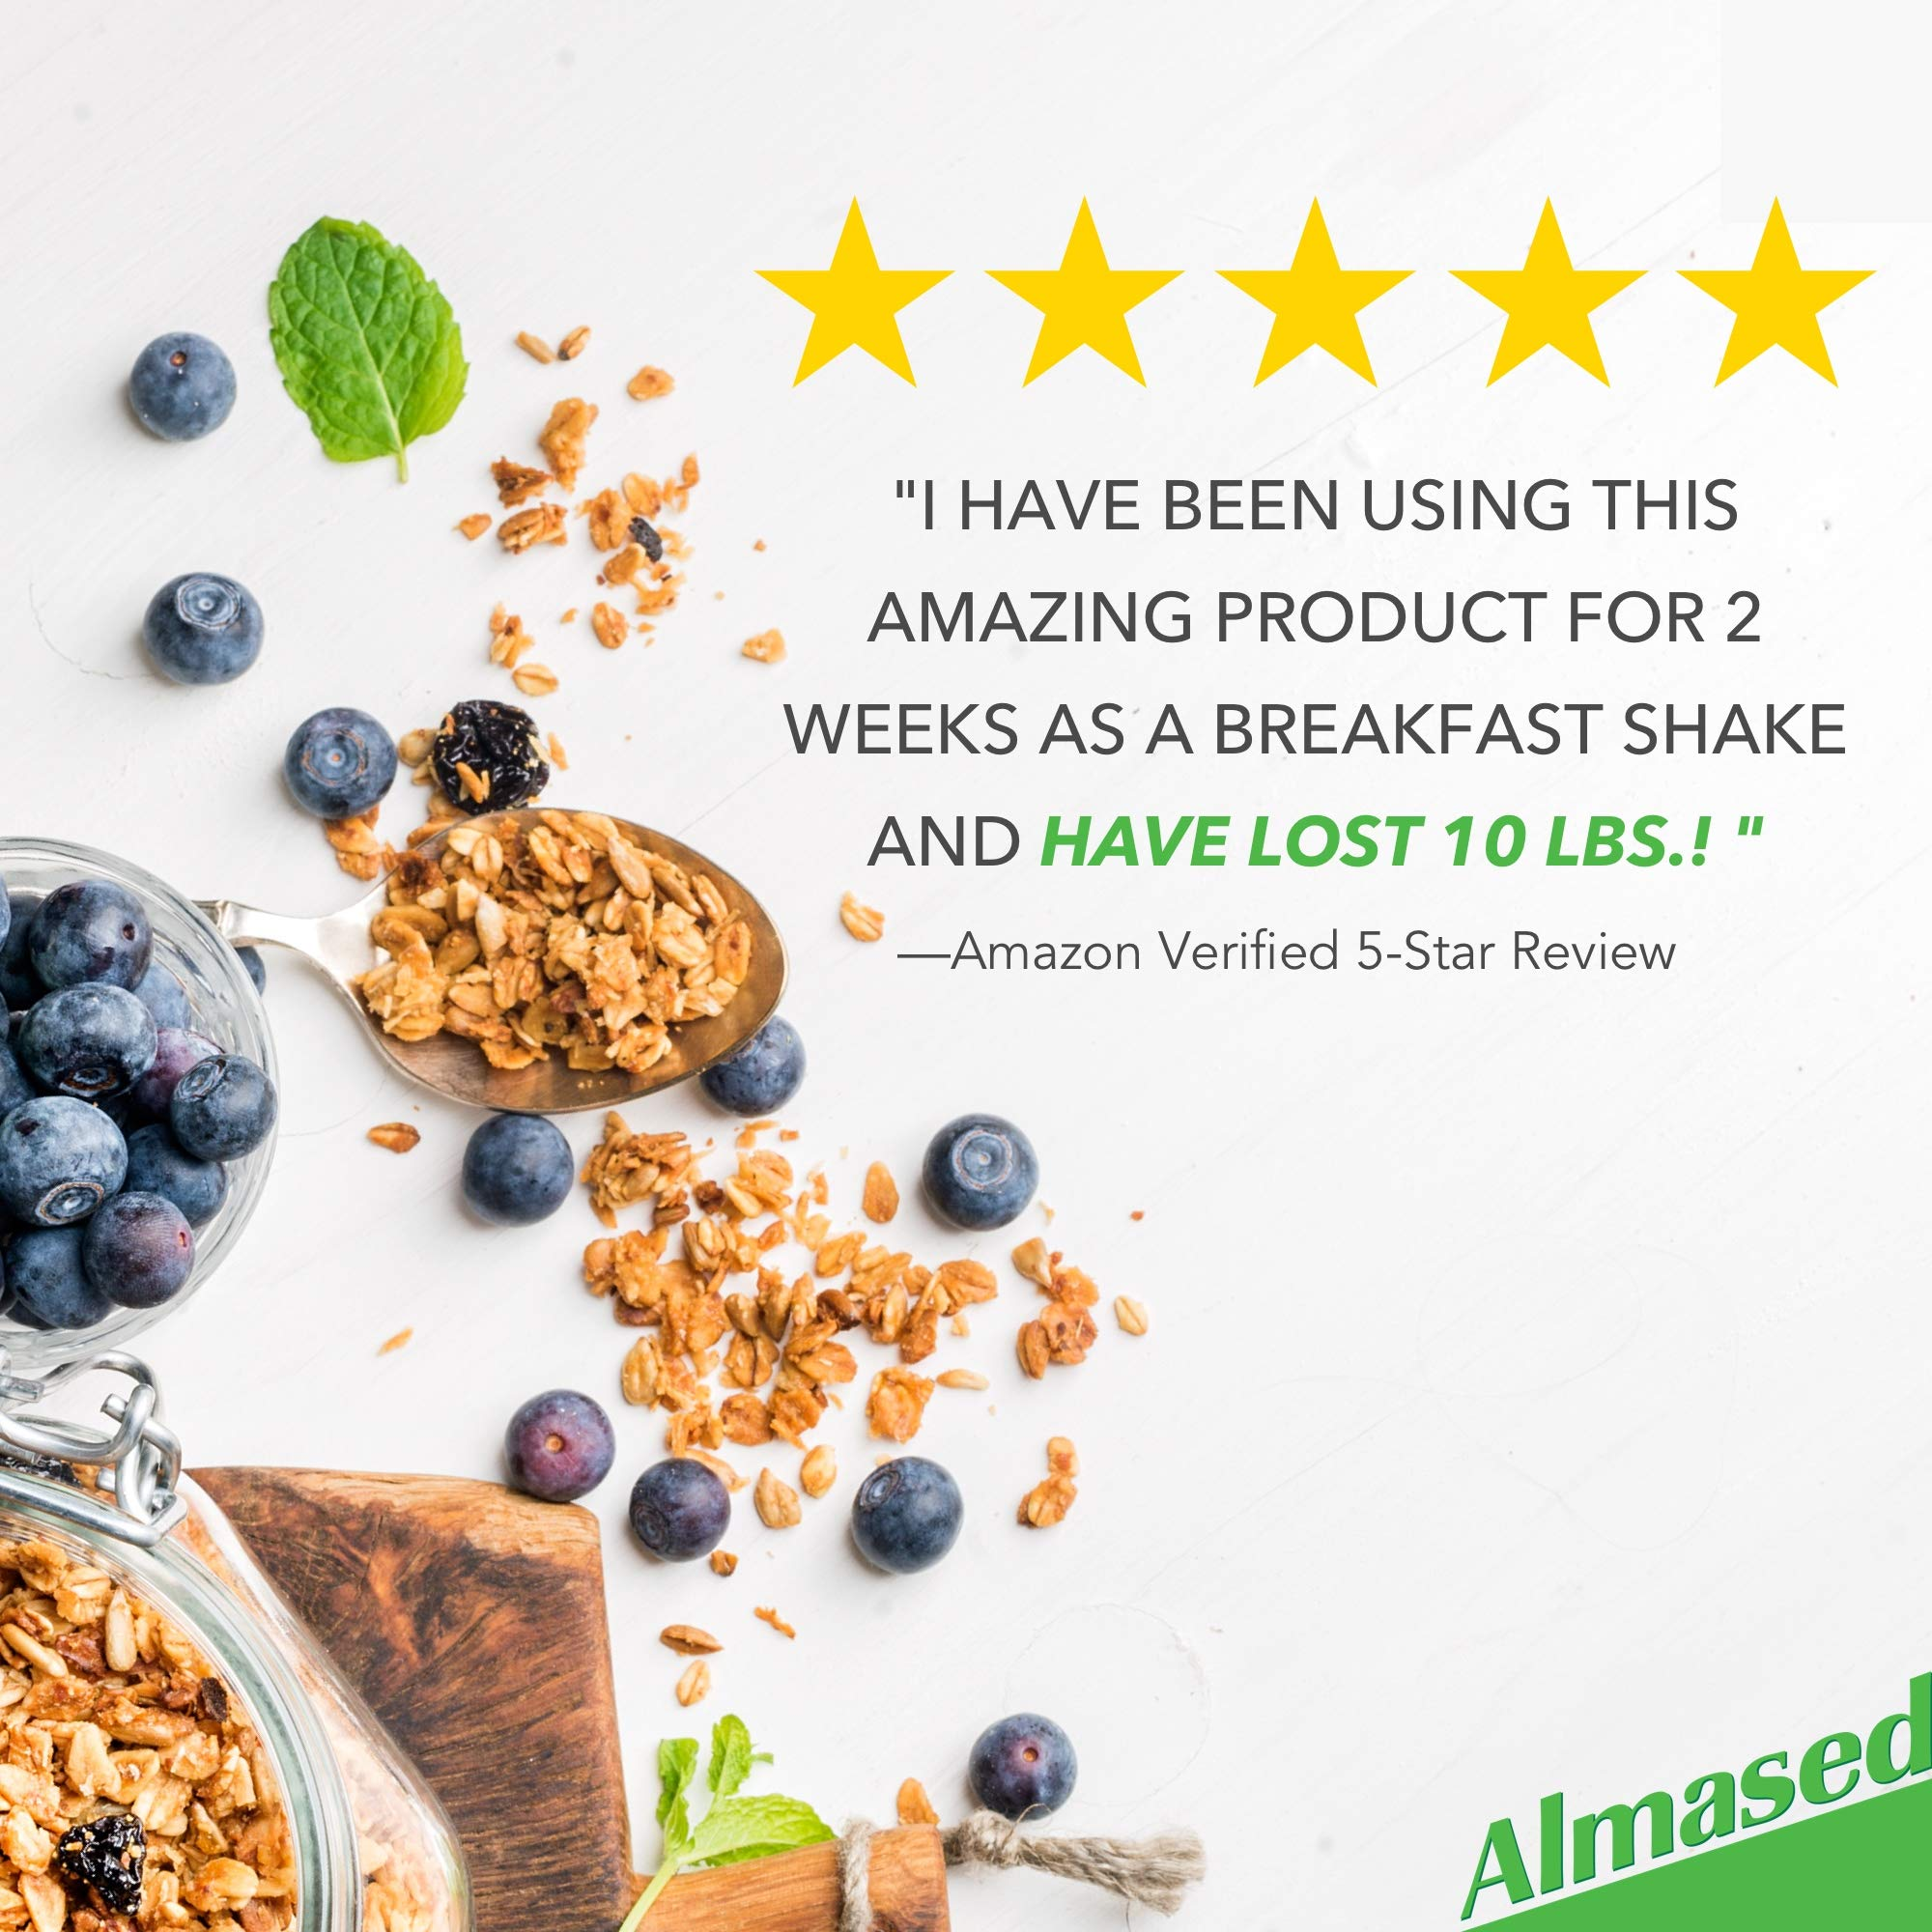 Almased Meal Replacement Shake (6 Pack) with Bonus Bamboo Spoon - 17.6 oz Powder - High Protein Weight Loss Drink, Fat Metabolism Booster - Vegetarian, Gluten Free - 60 Total Servings by Almased (Image #2)